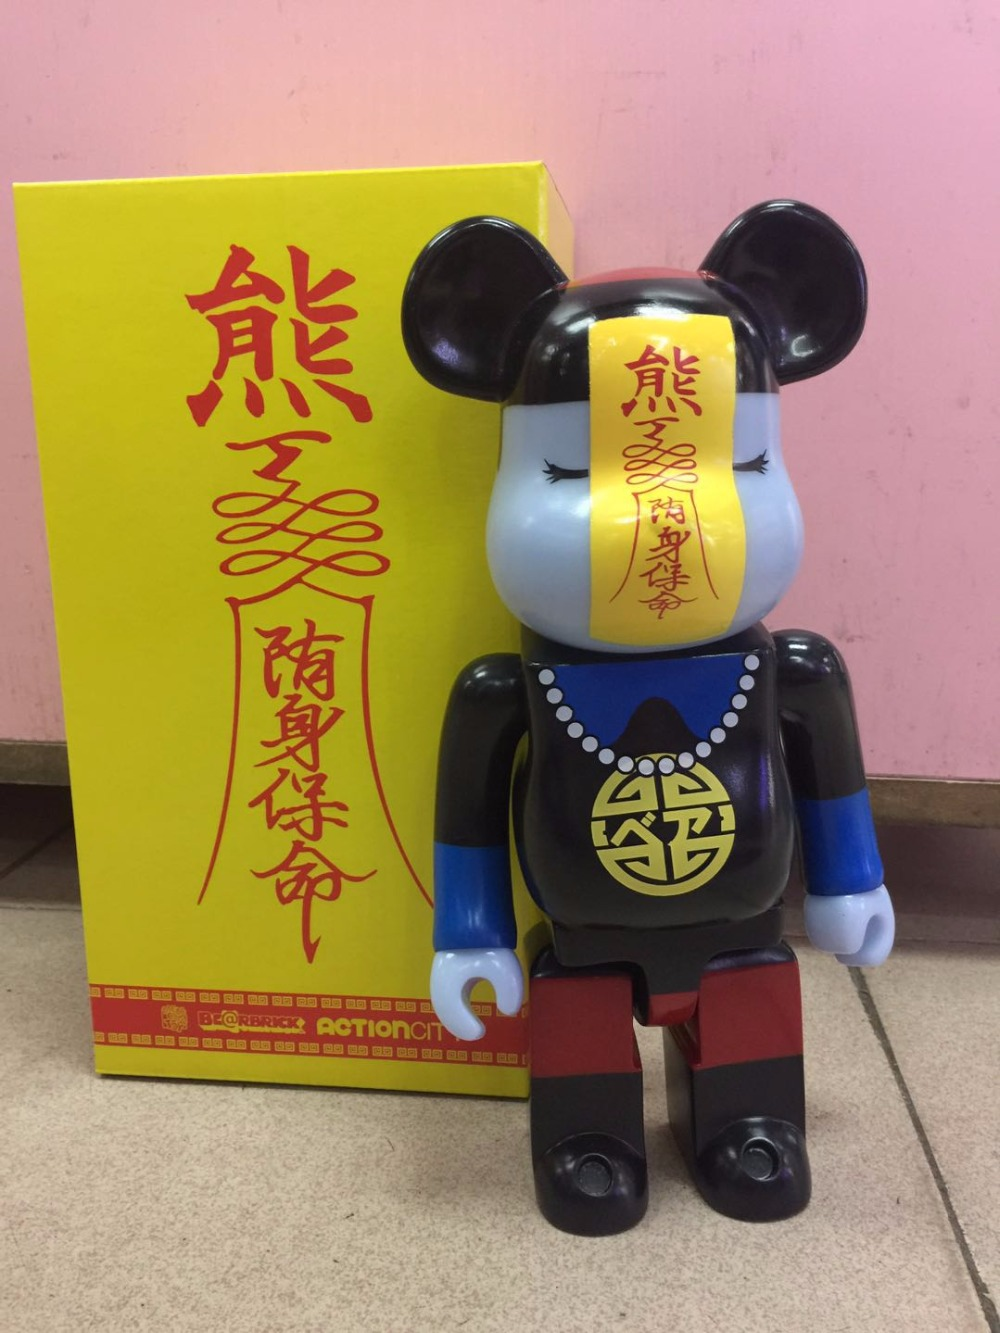 New 28CM BEARBRICK 400% HORROR JIANG SHI GLOW Fashion Toy PVC Action Figure Collectible Model Toy Decoration new arrival be rbrick bear bearbrick pvc action figure toy 52cm vinyl art figure as a gift for boyfriends